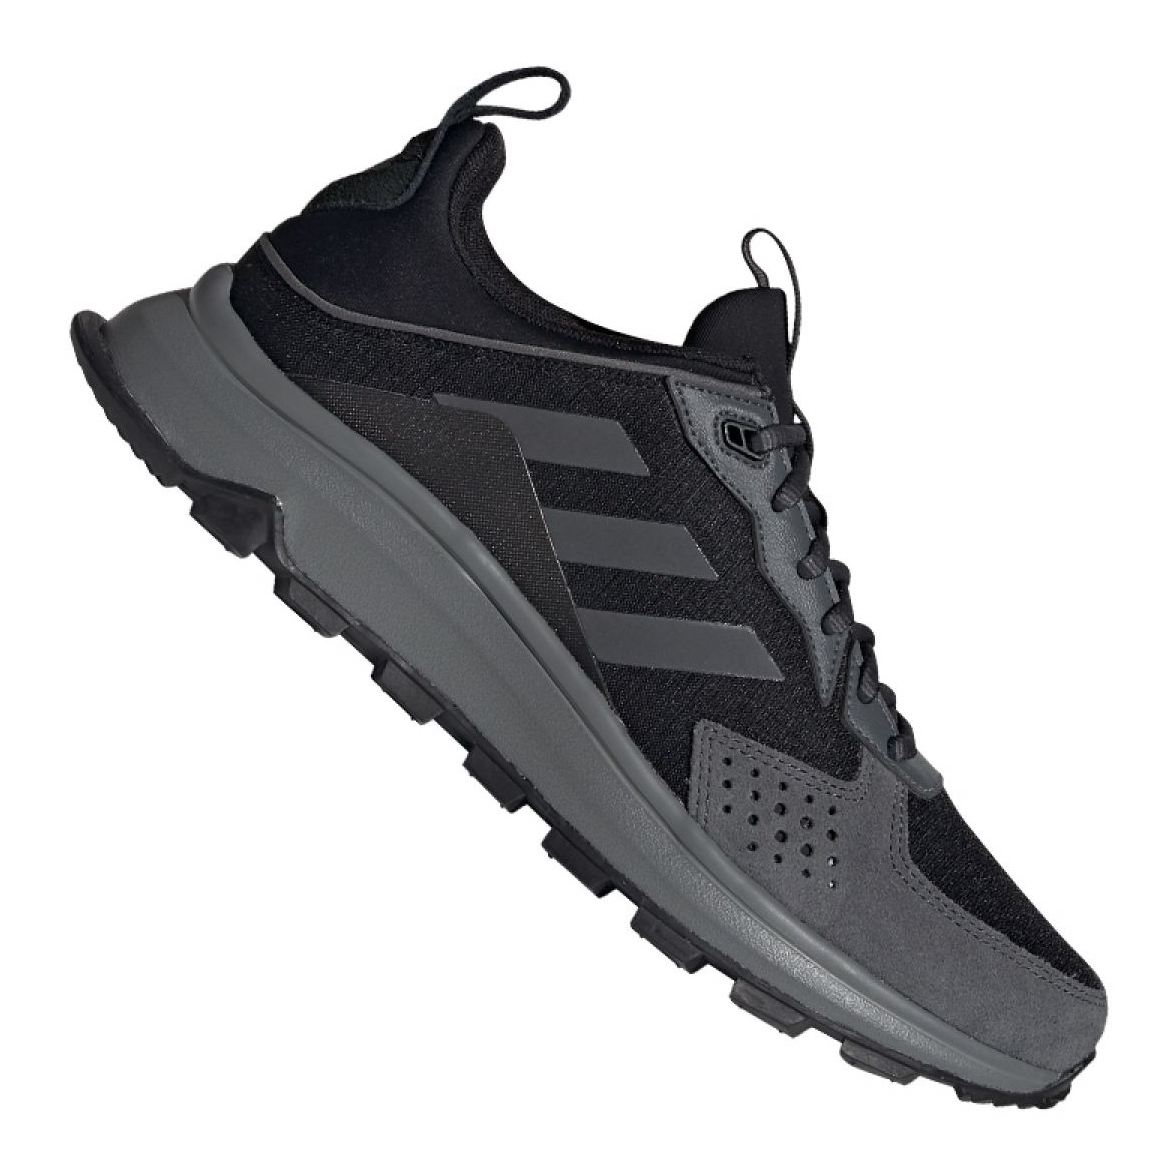 Sapatilhas Ténis Adidas Response Trail | STYLE OUT